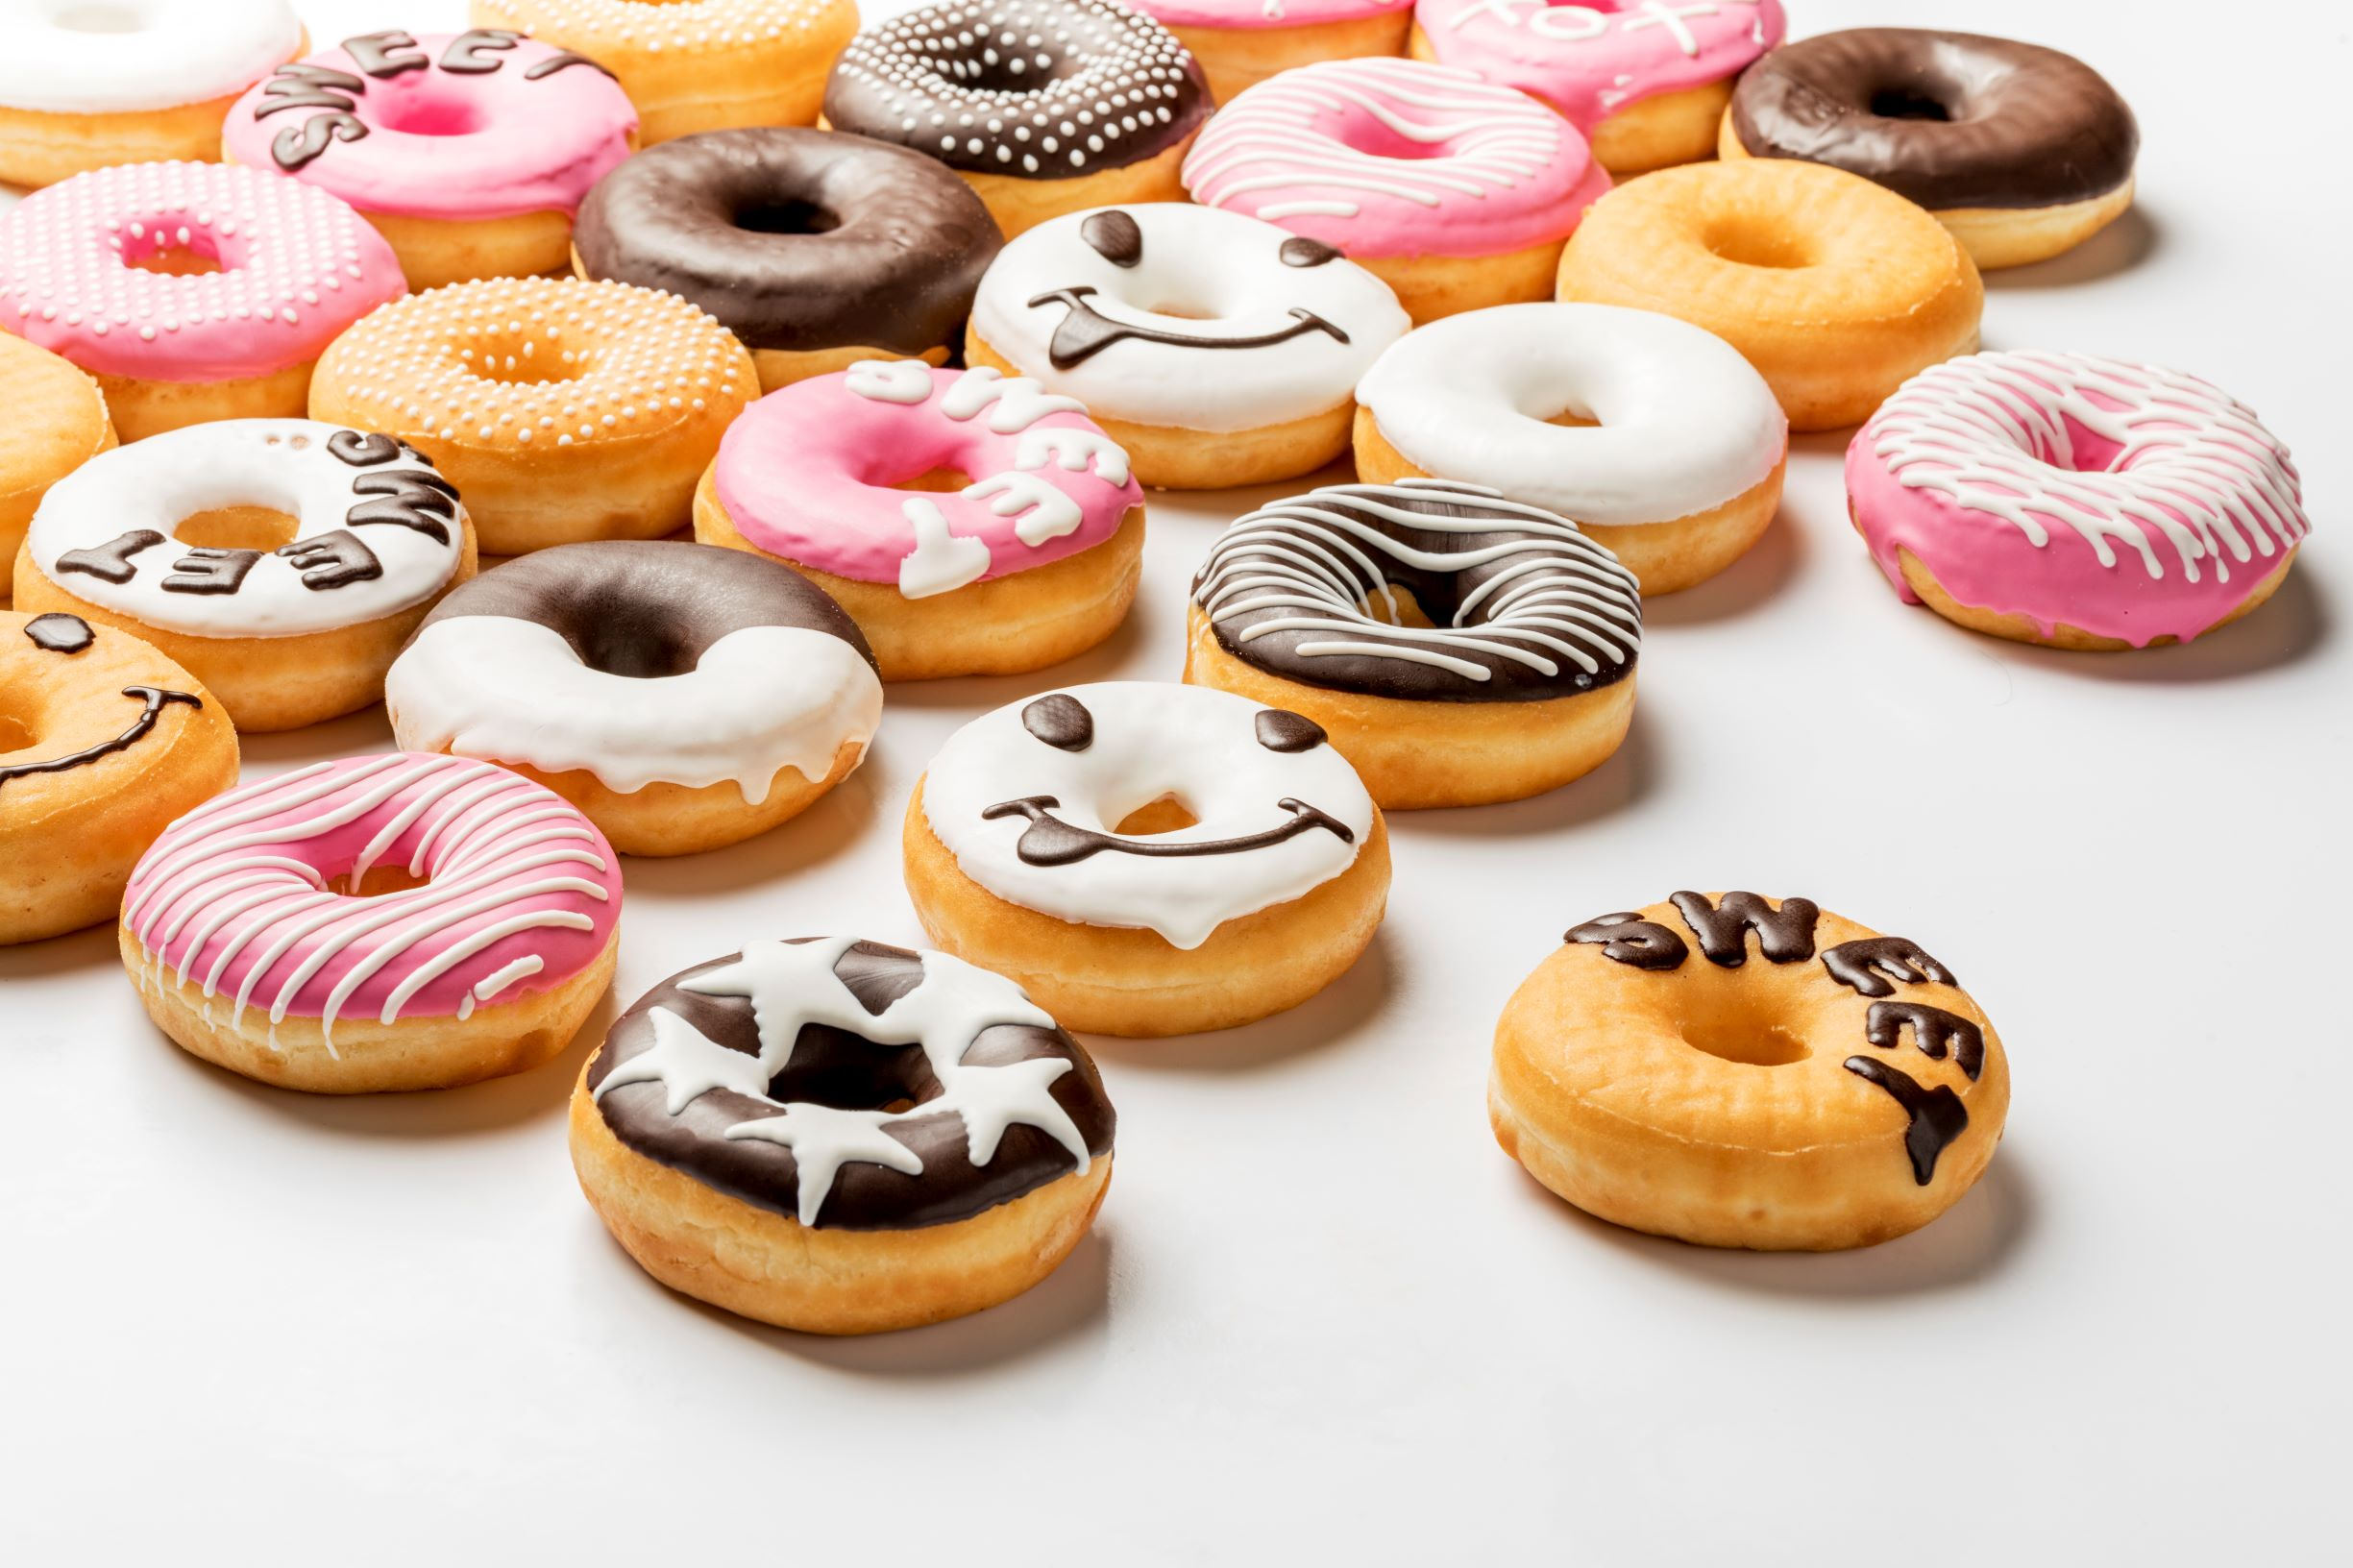 Wide range of chocolate decorated donuts made with FoodJet chocolate depositor